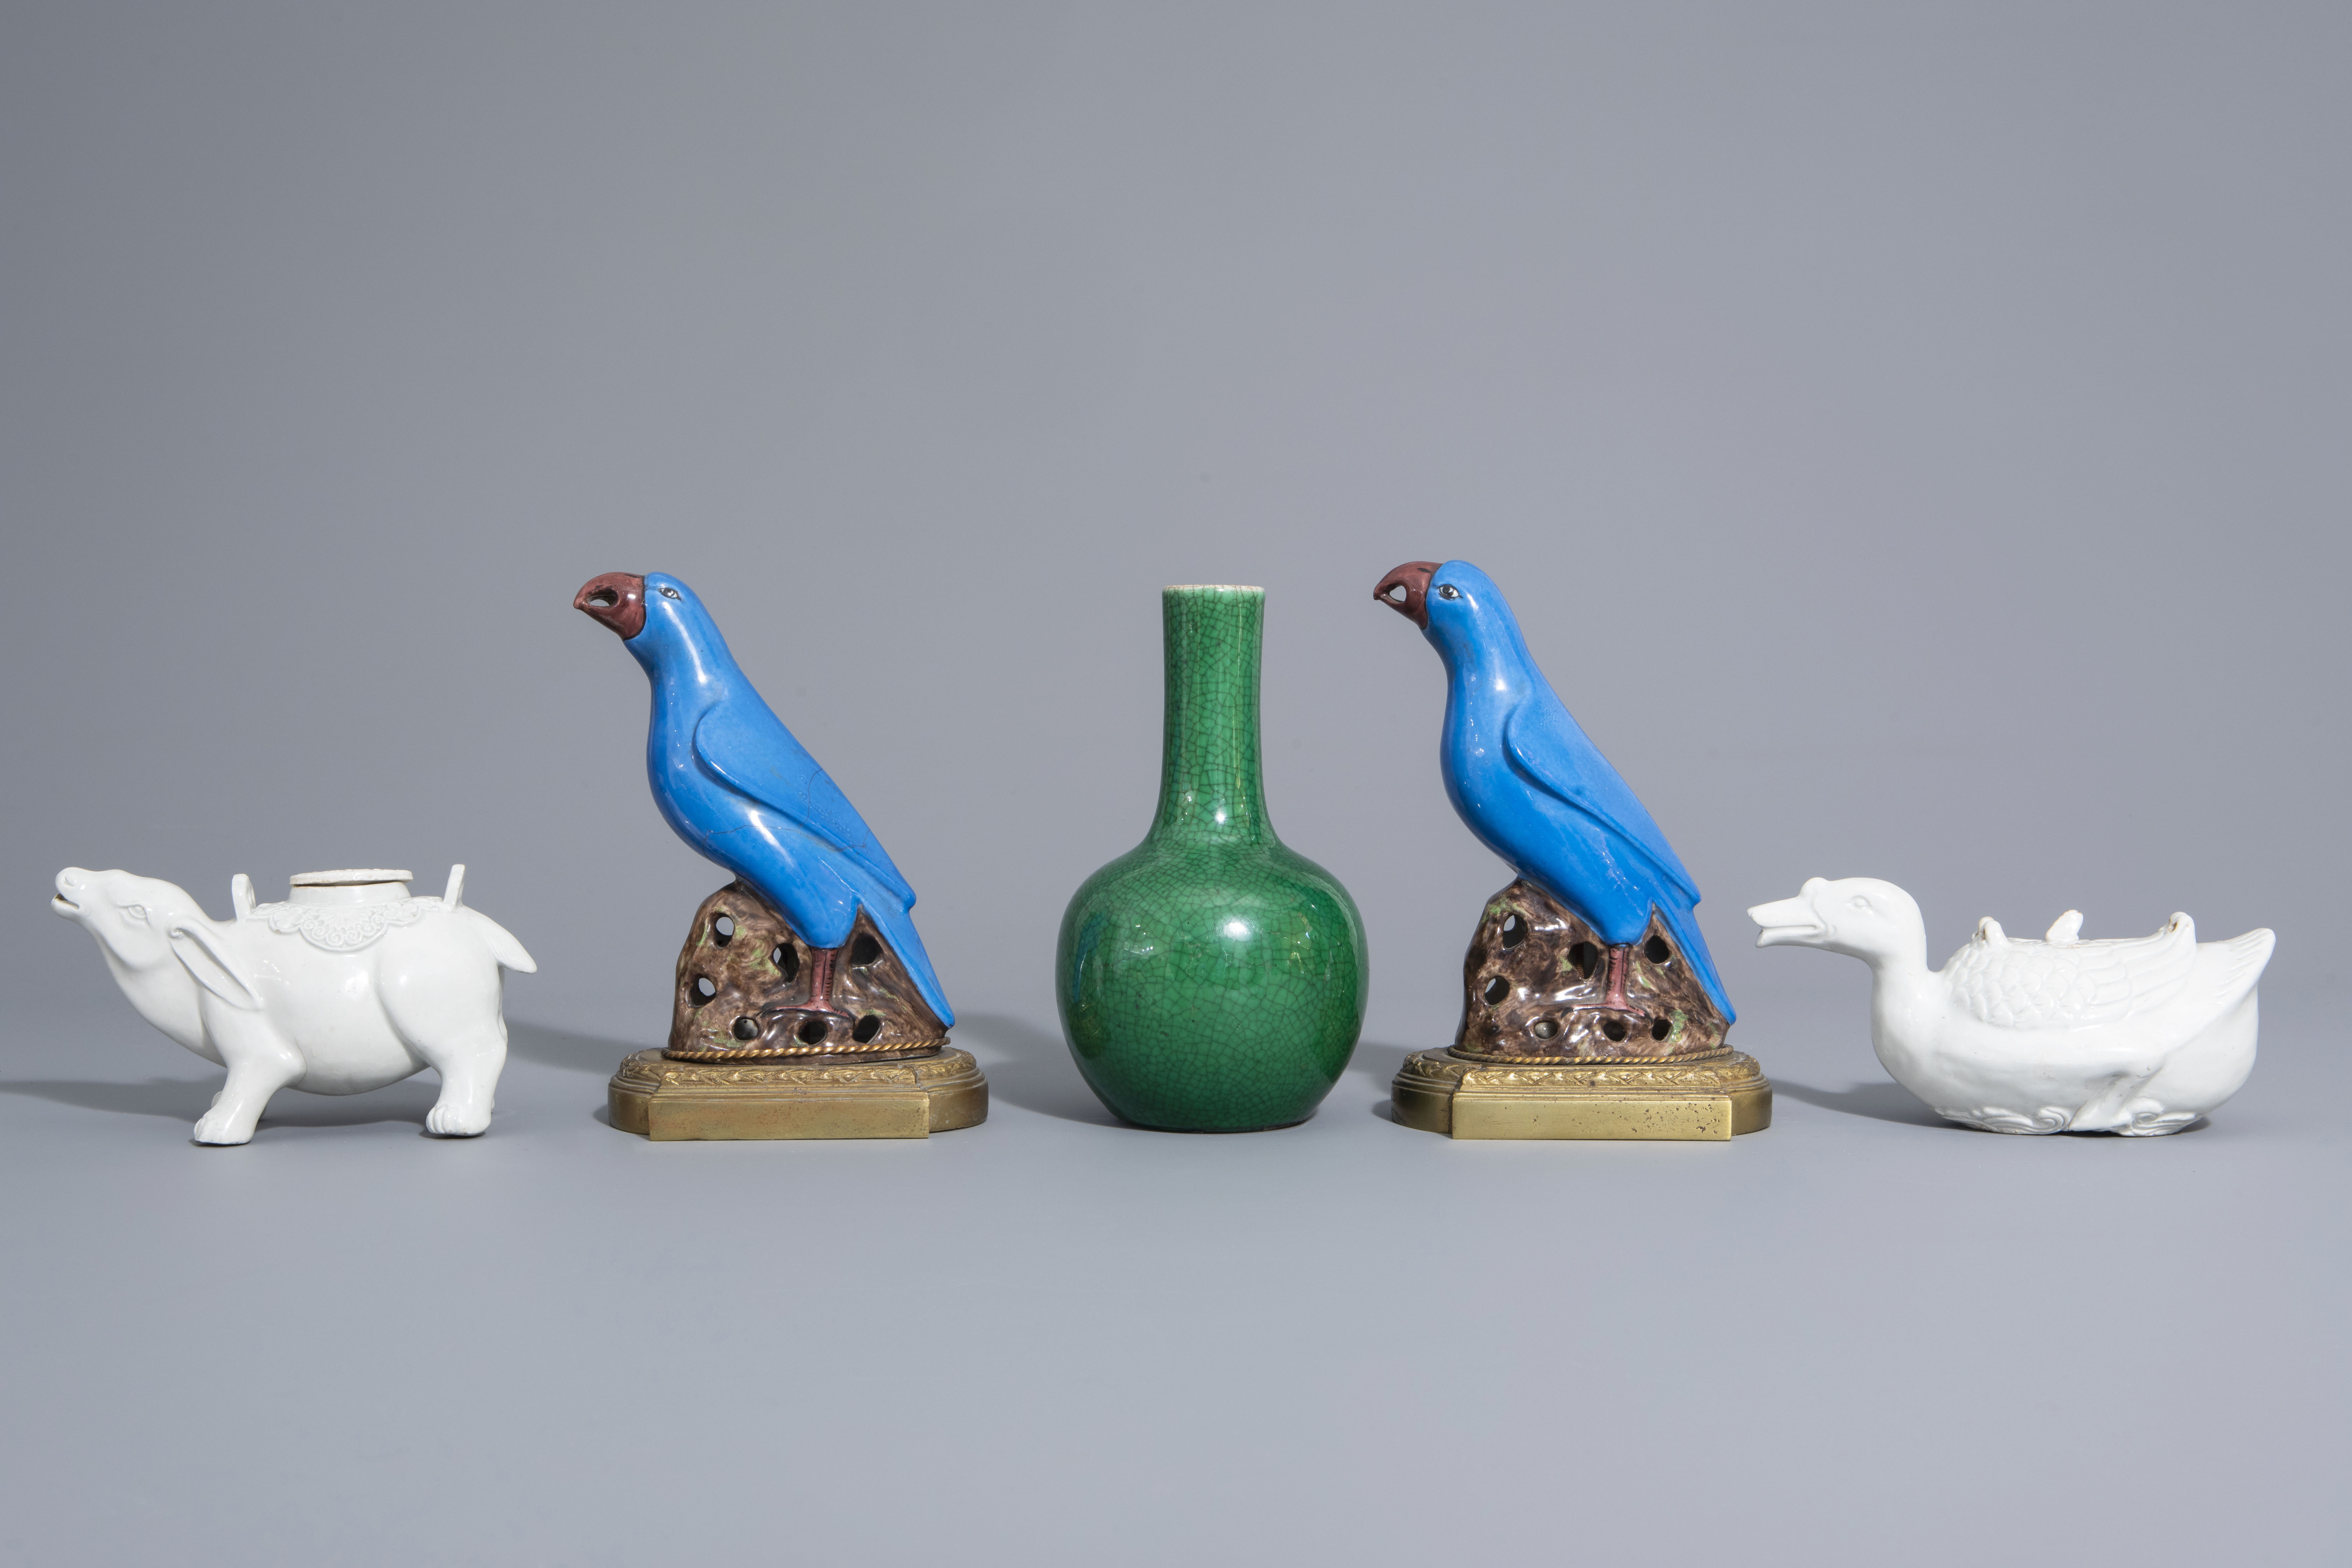 A Chinese monochrome green vase, 2 blanc de Chine teapots & a pair of polychrome birds, 19th/20th C - Image 4 of 7